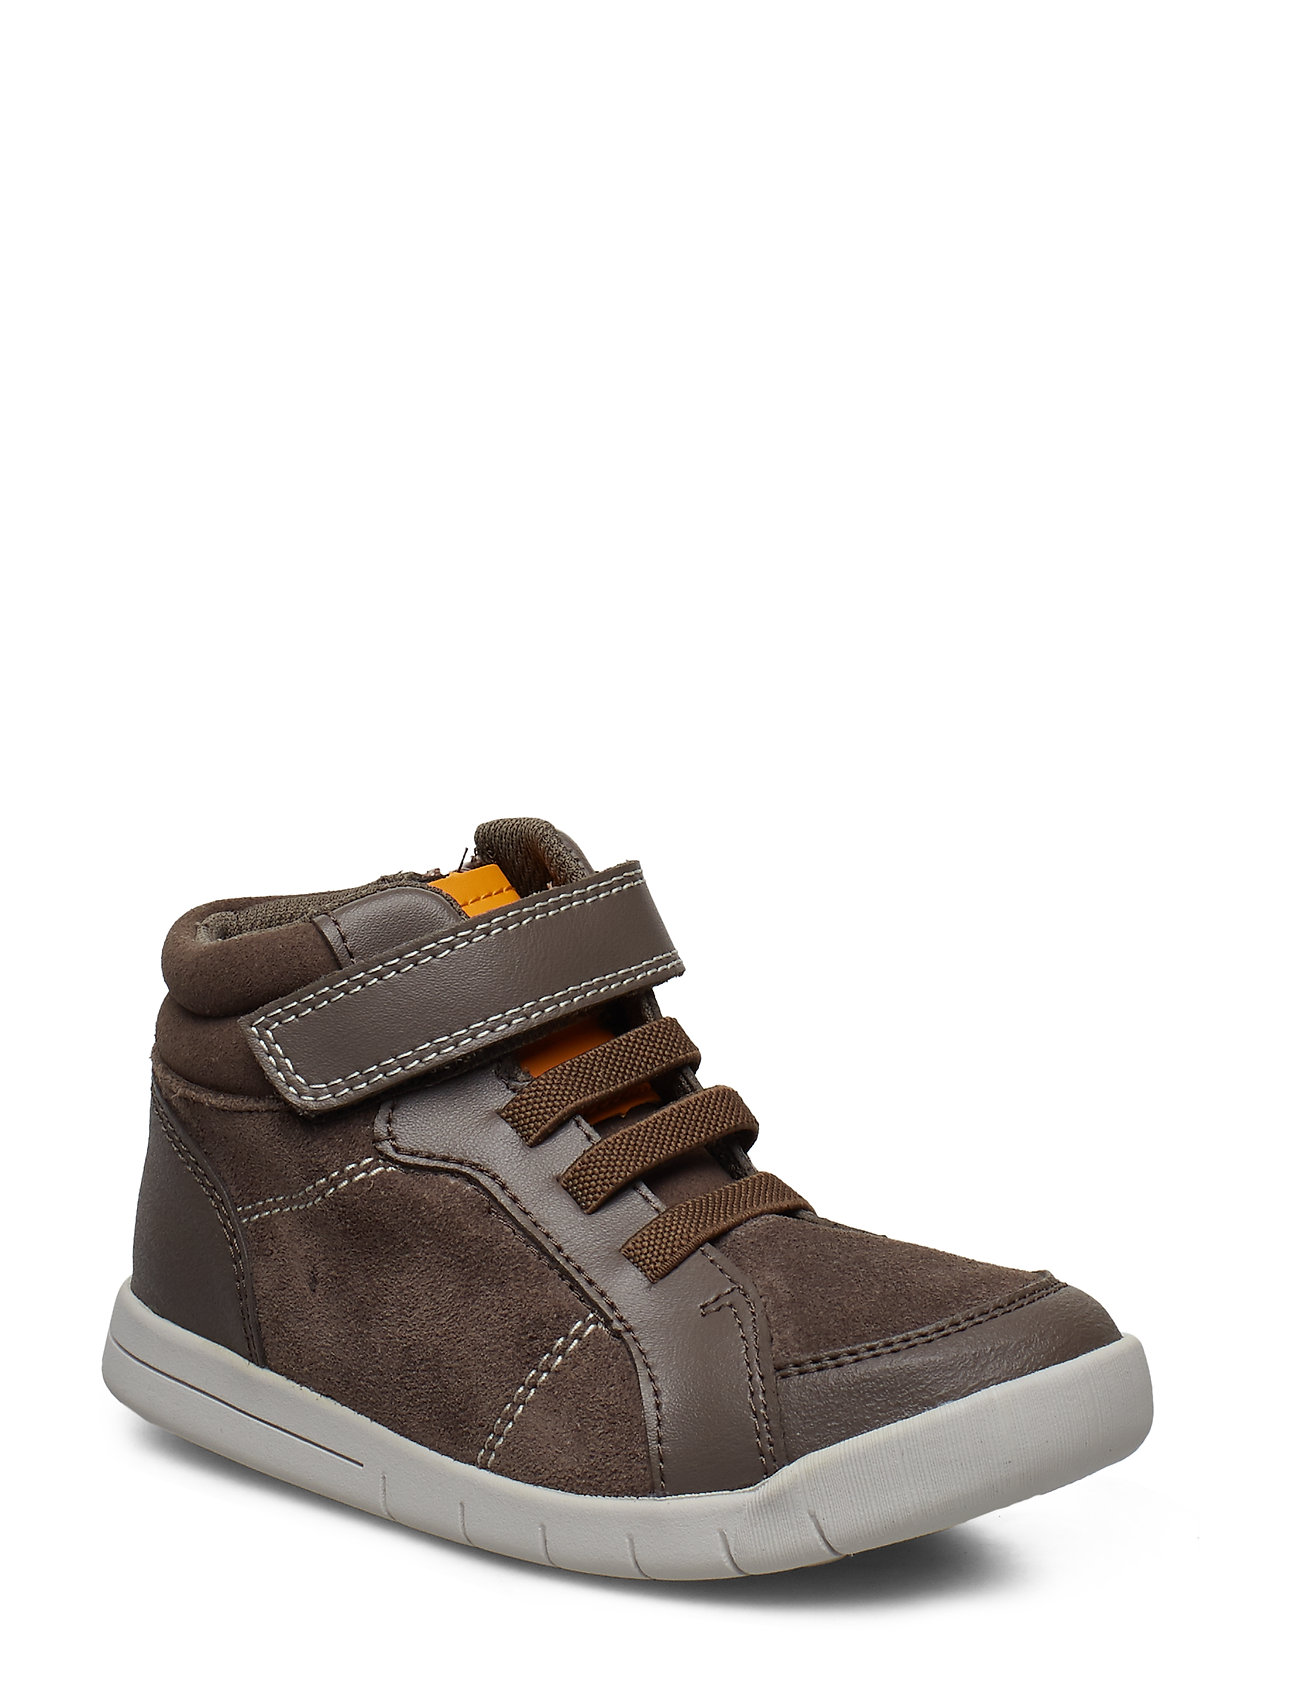 Clarks Emery Beat T - BROWN LEATHER